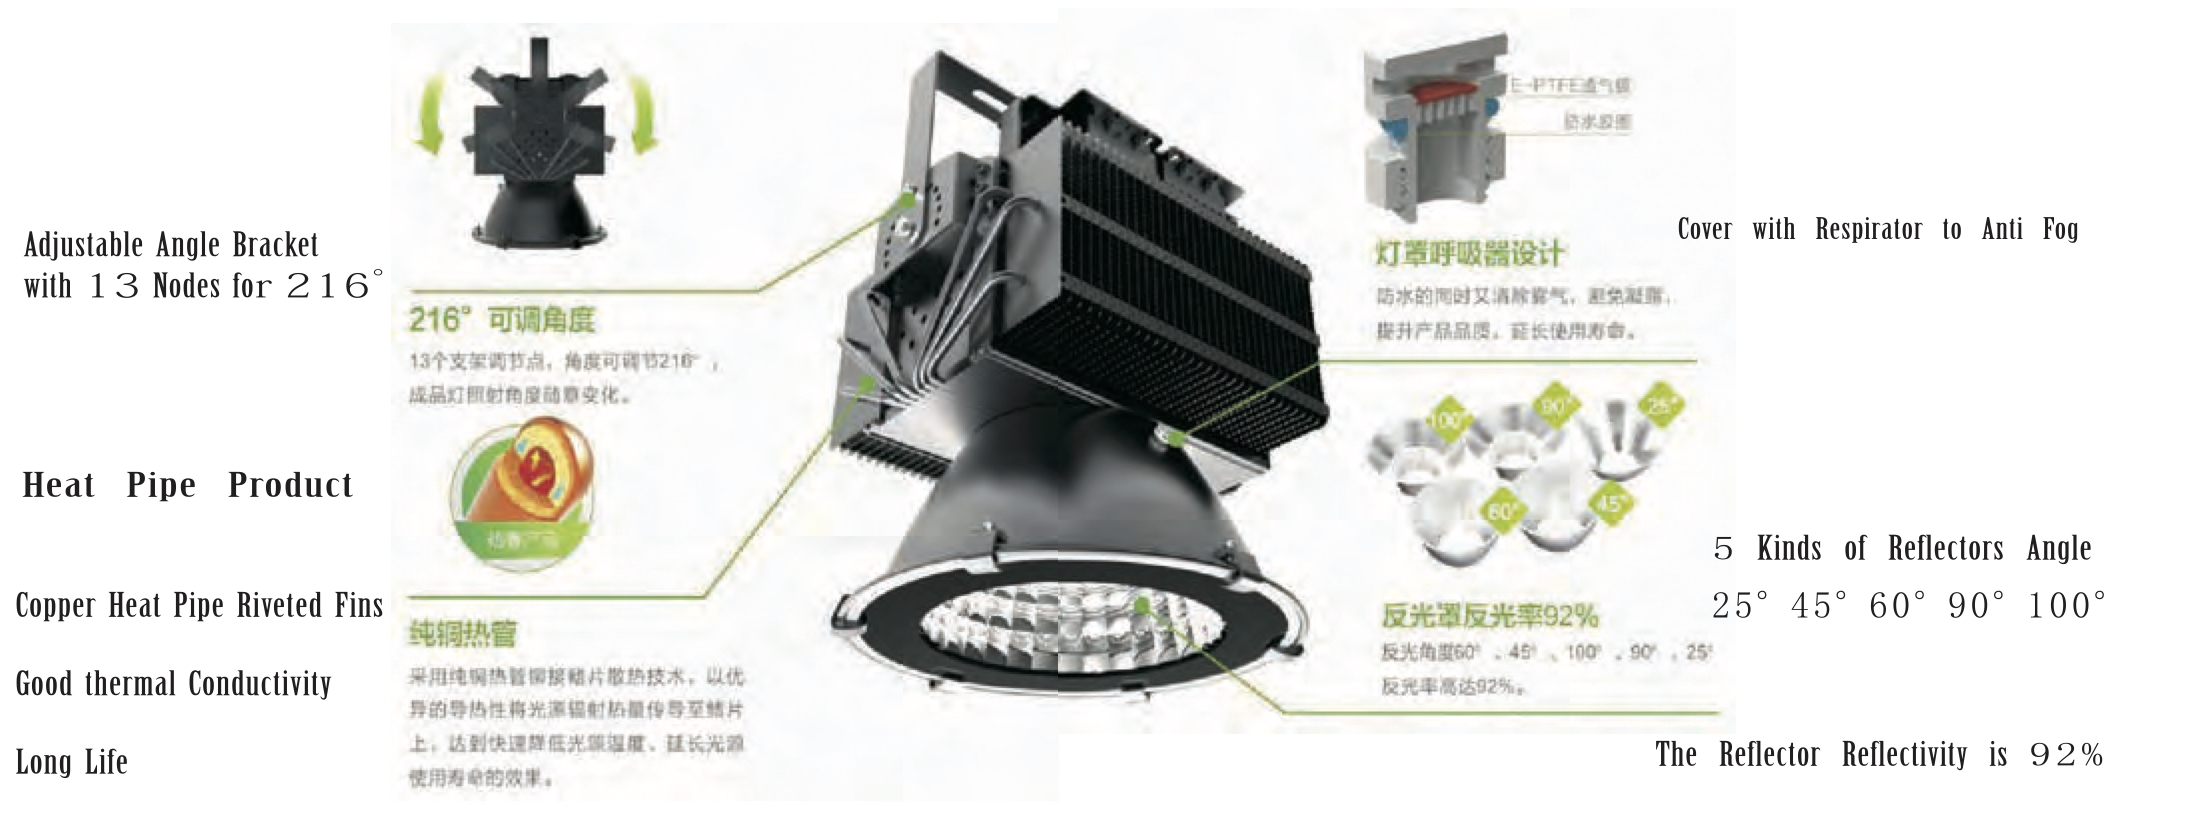 HB-NX(200W-1000W)|High Bay & Mining LED.Flexible-Design GLLL High Bay LED to meet your needs and budget.